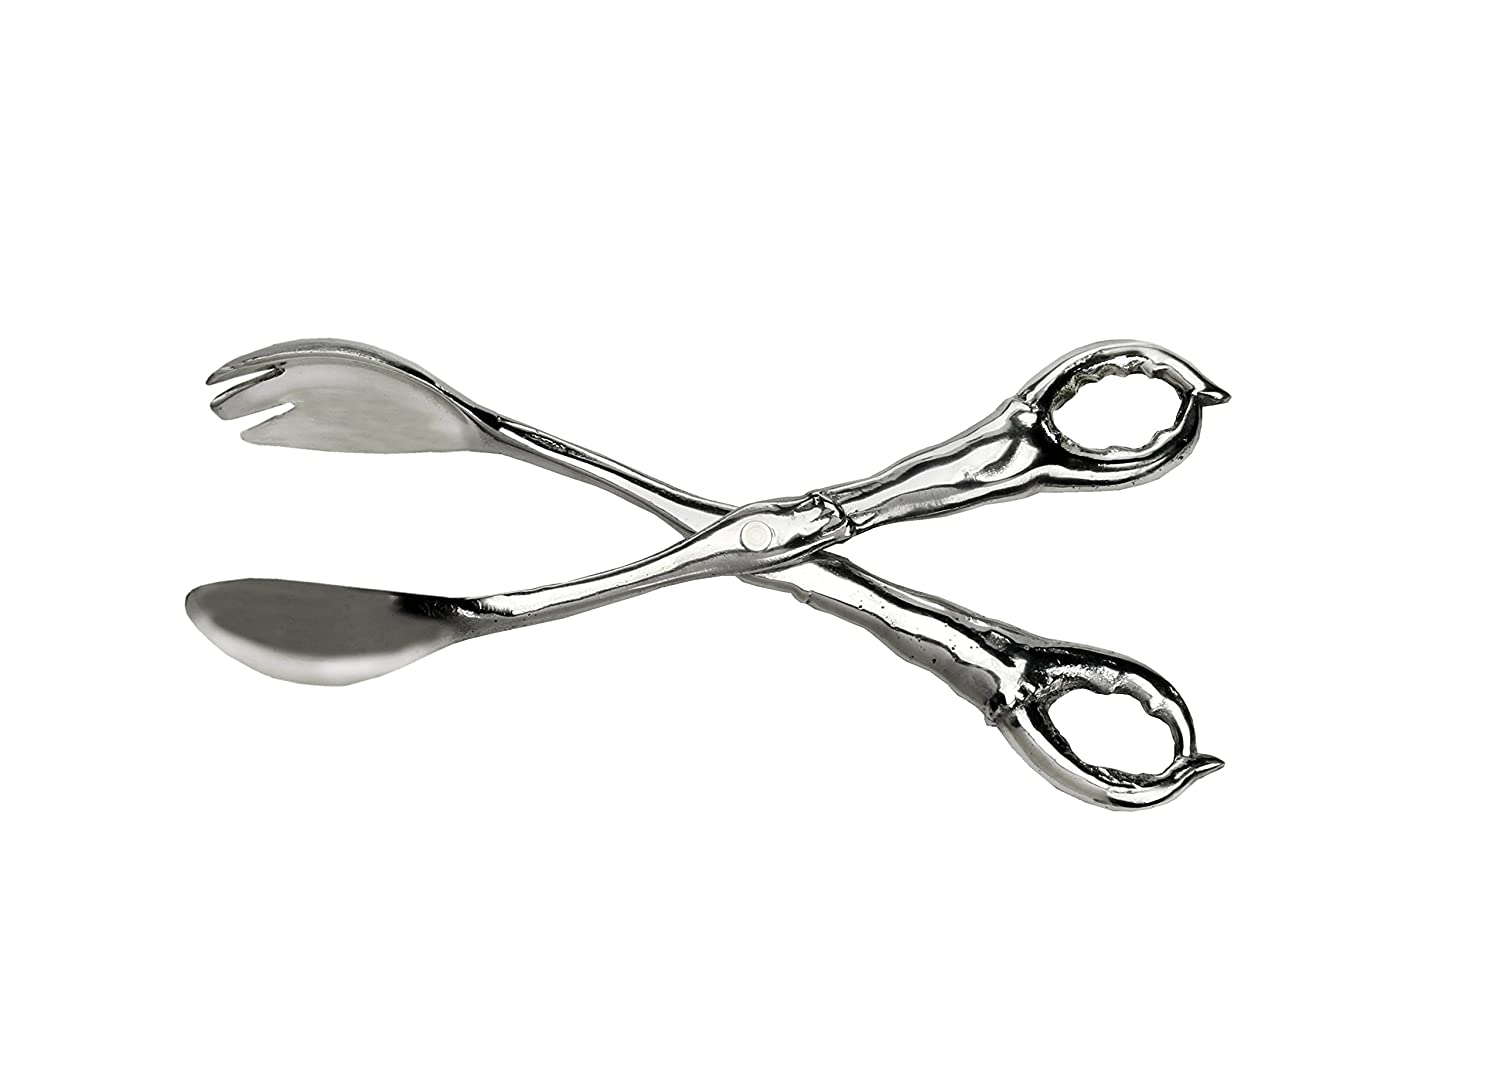 Aluminum Crab Claw Design Salad / Serving Tongs